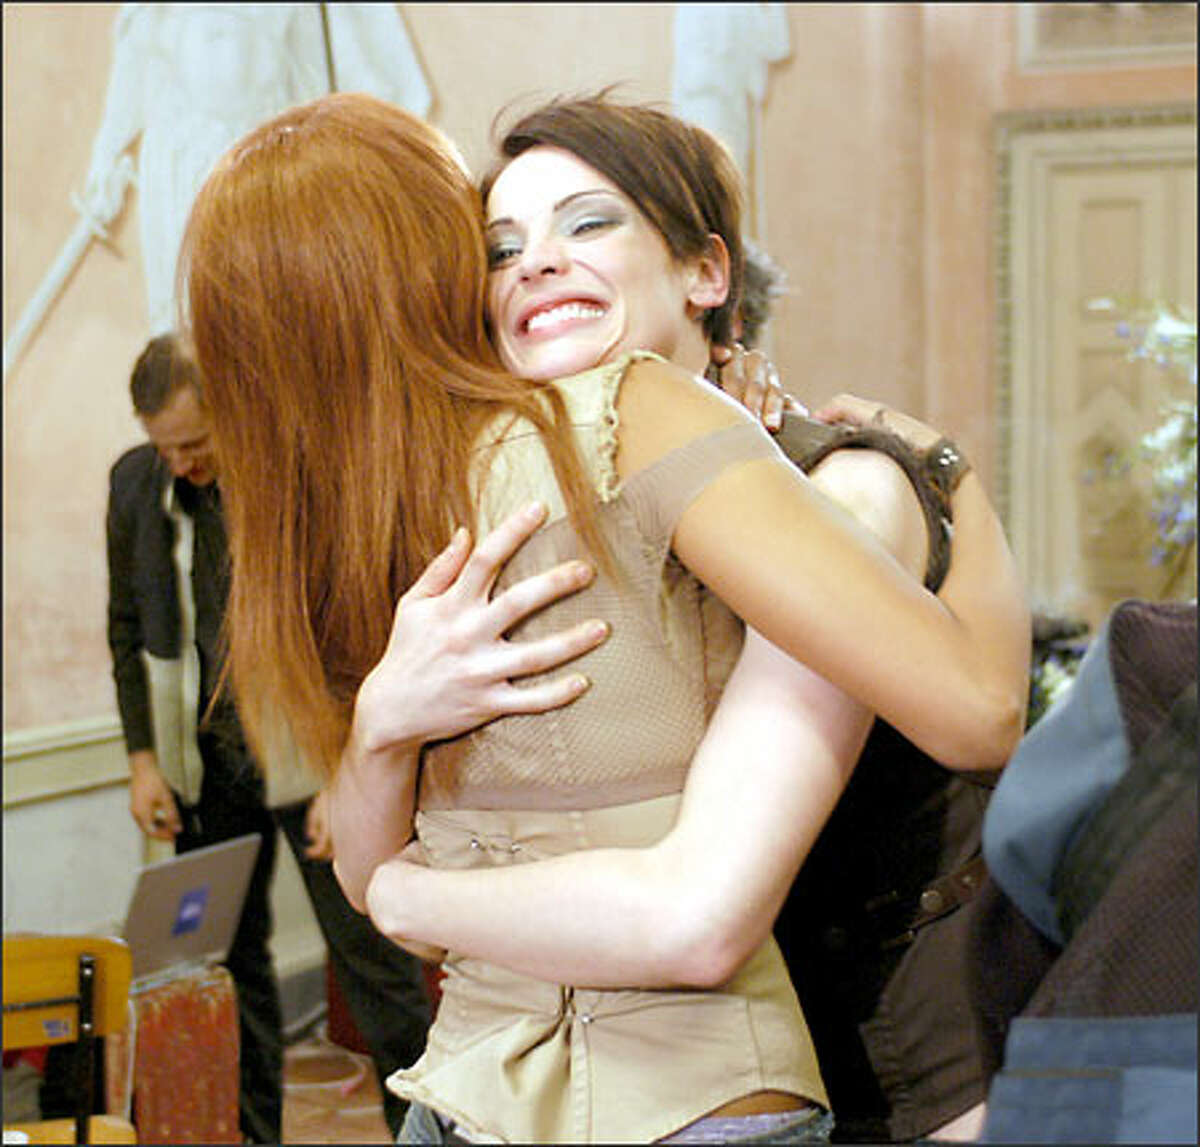 Host Tyra Banks gives Yoanna a congratulatory hug.